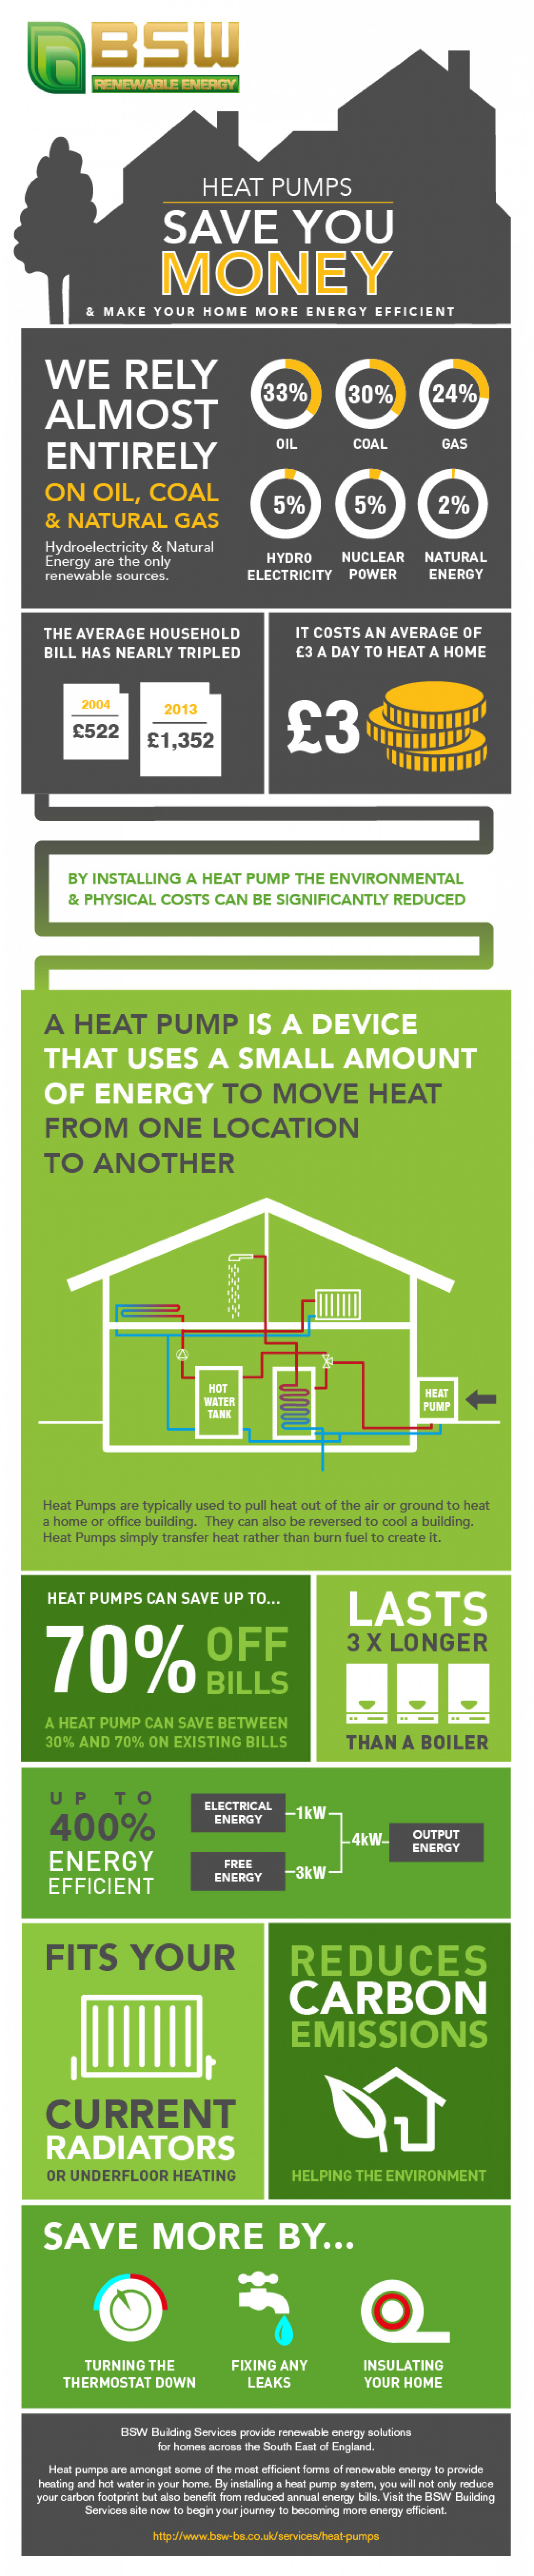 #C39408 How Heat Pumps Can Save You Money Visual.ly Best 4073 How Much To Add Central Air photos with 1500x7240 px on helpvideos.info - Air Conditioners, Air Coolers and more